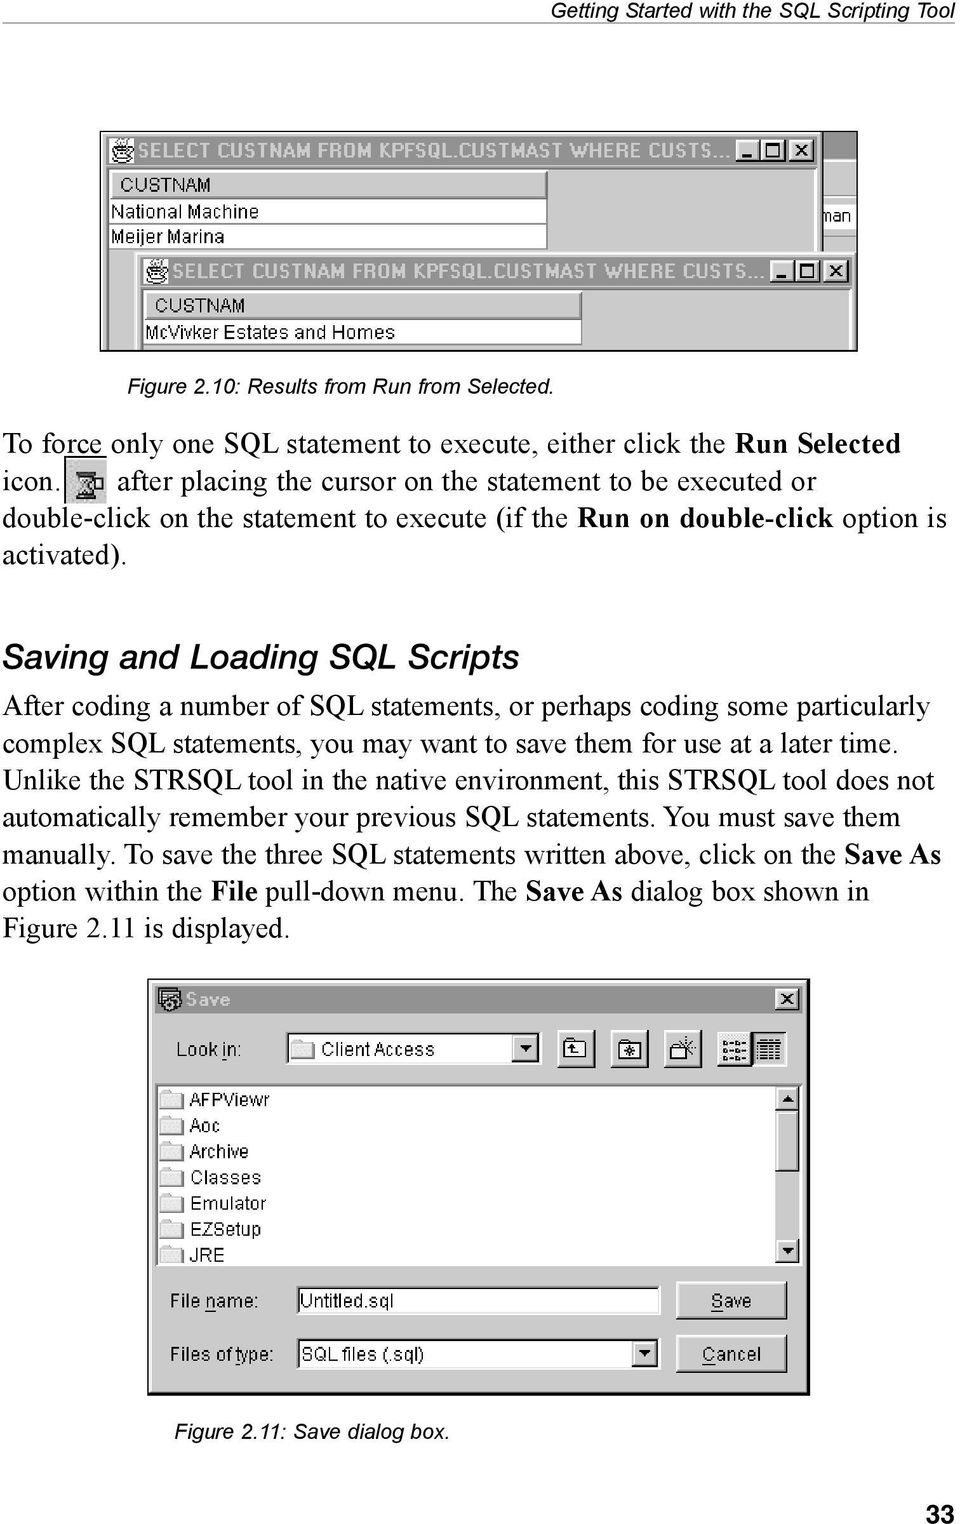 Saving and Loading SQL Scripts After coding a number of SQL statements, or perhaps coding some particularly complex SQL statements, you may want to save them for use at a later time.